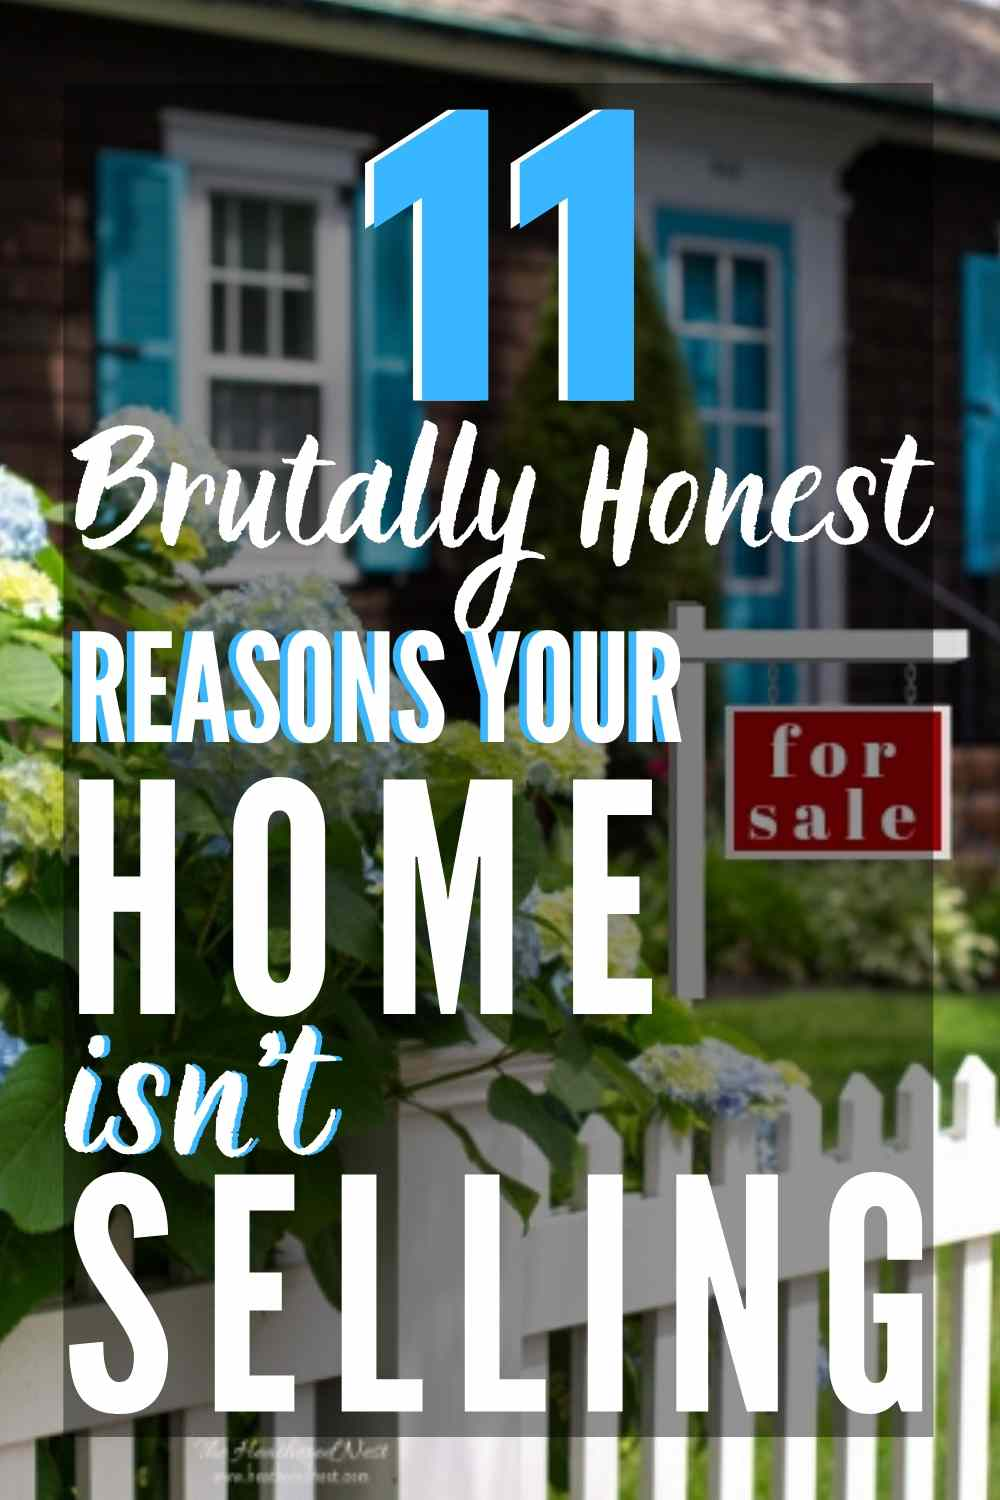 11 Hard To Hear Reasons Your Home Hasn't Already Sold.